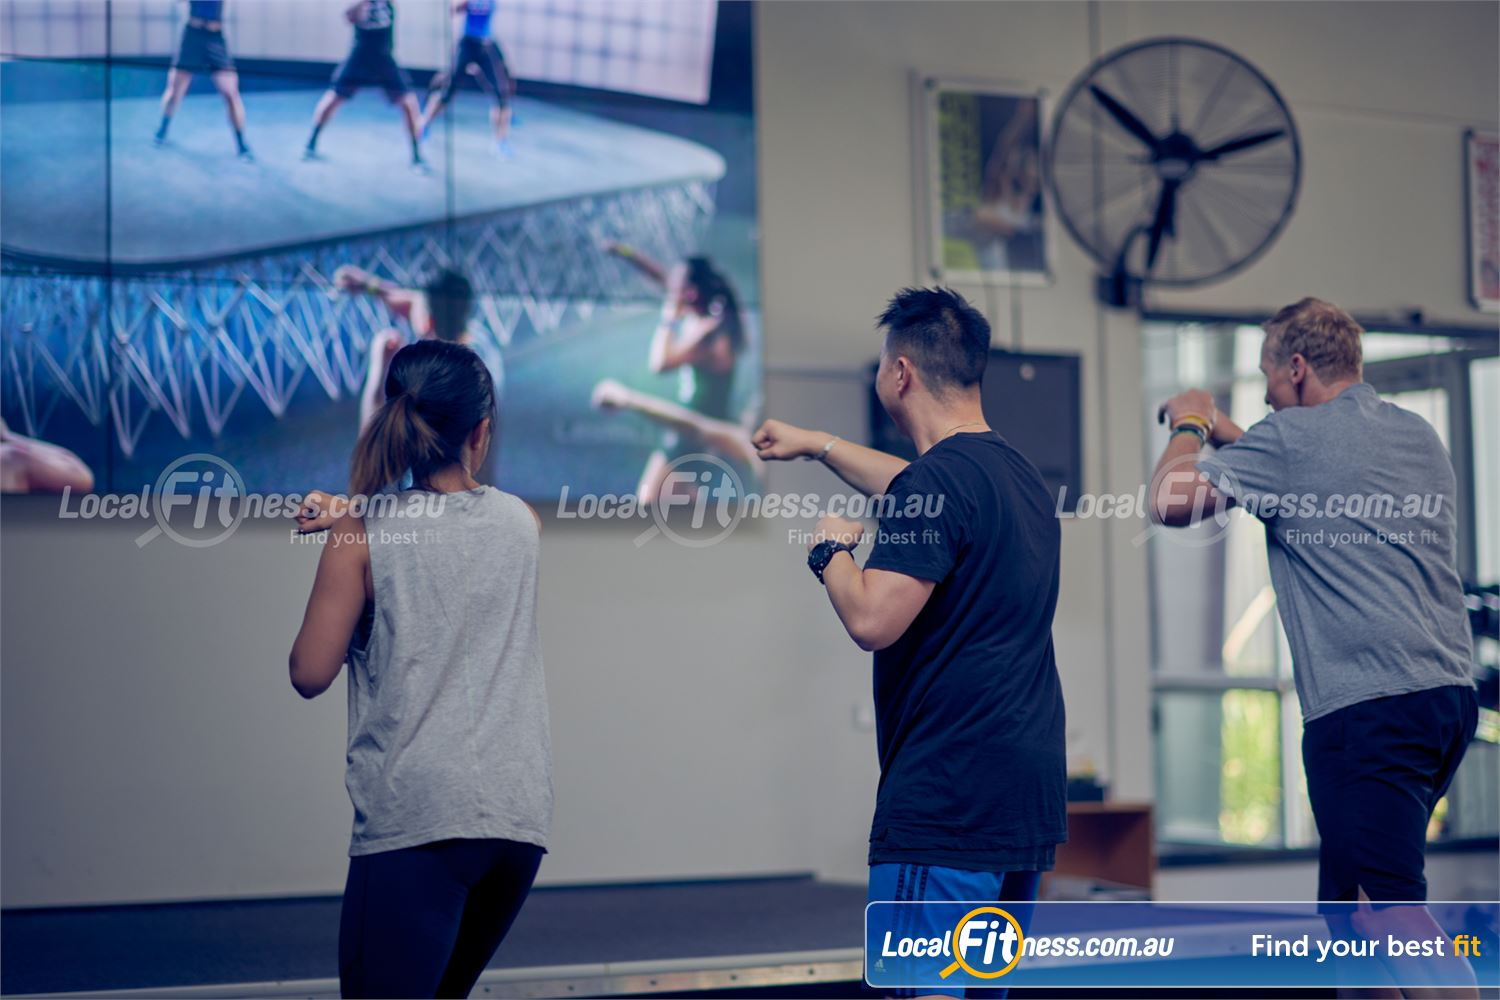 Knox Leisureworks Near Ferntree Gully Experience the revolutionary virtual classes now at Knox Leisureworks.